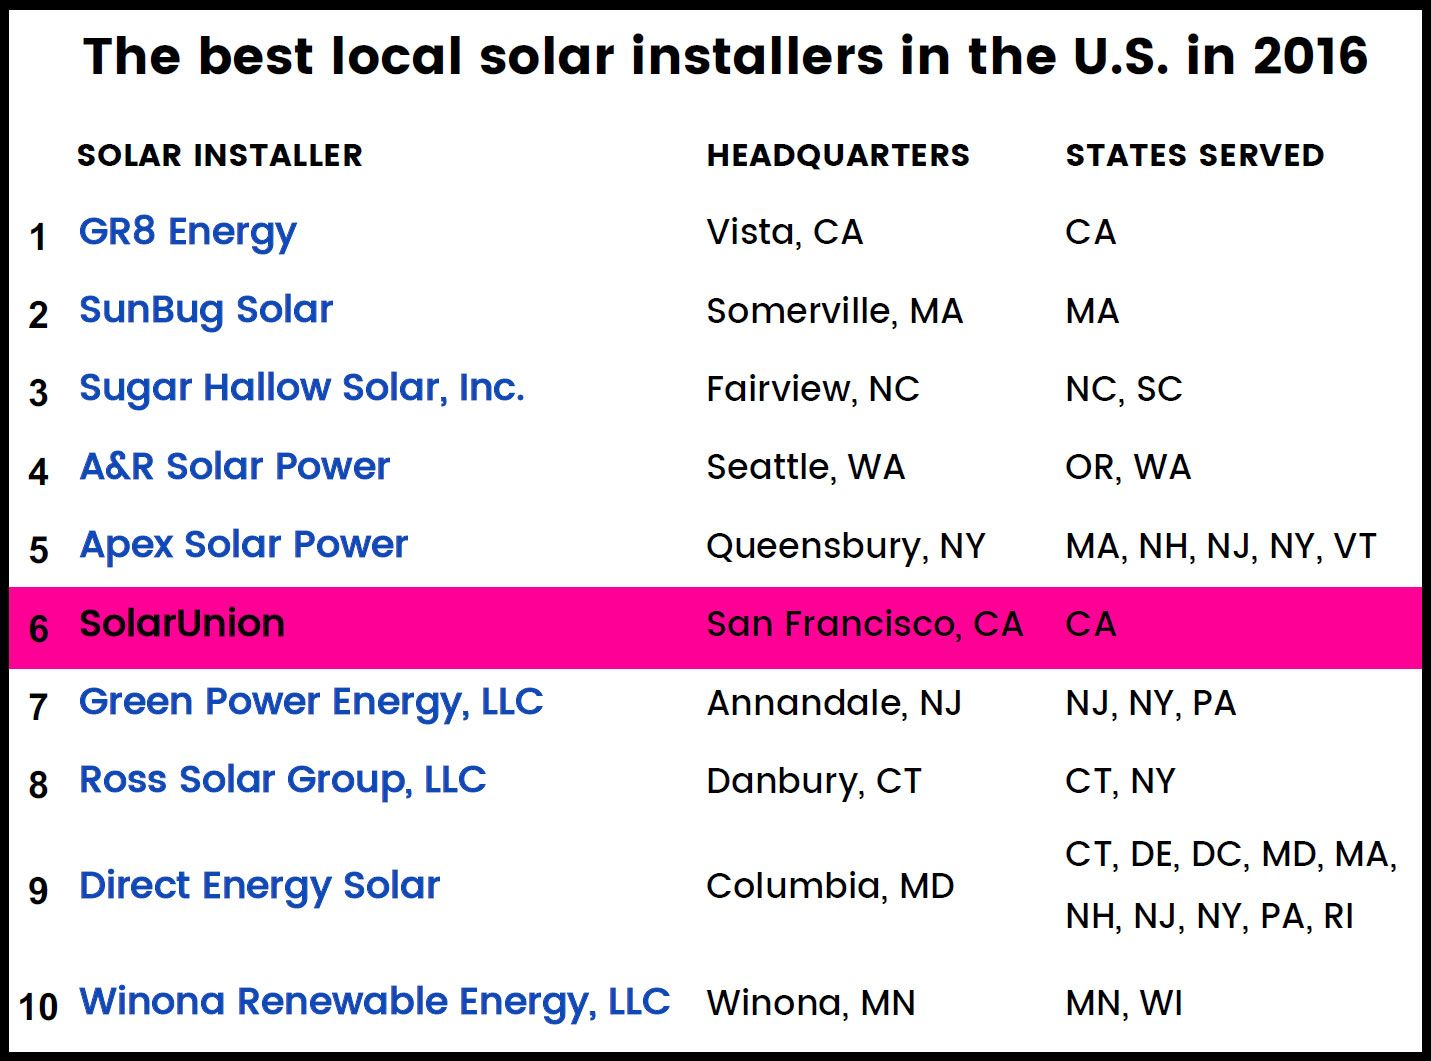 Best Solar Installers In The U.S. 2016 Infographic